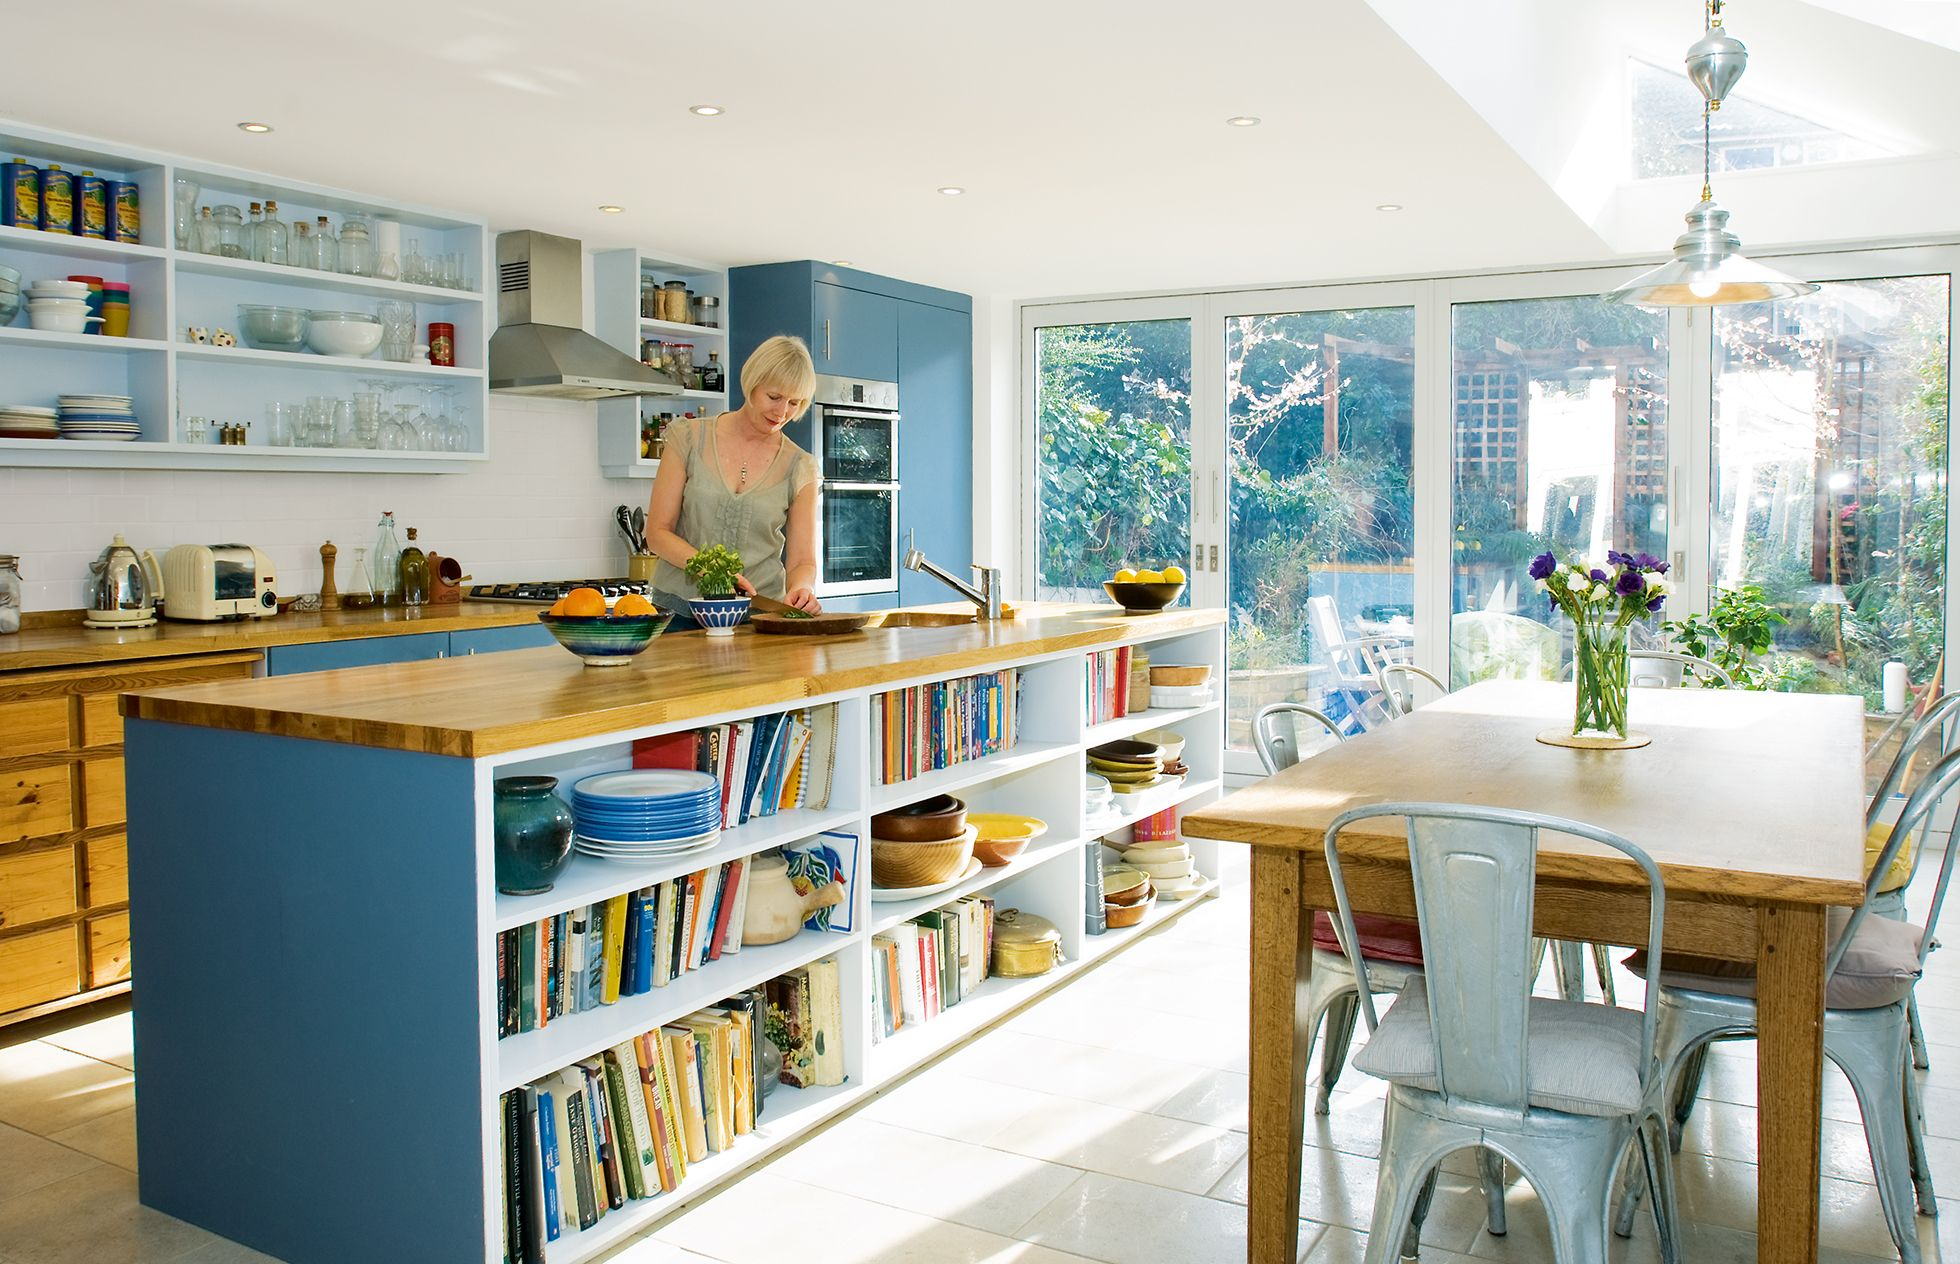 A sociable kitchen extension - Jane Wymark. Real Homes | New Kitchen ...